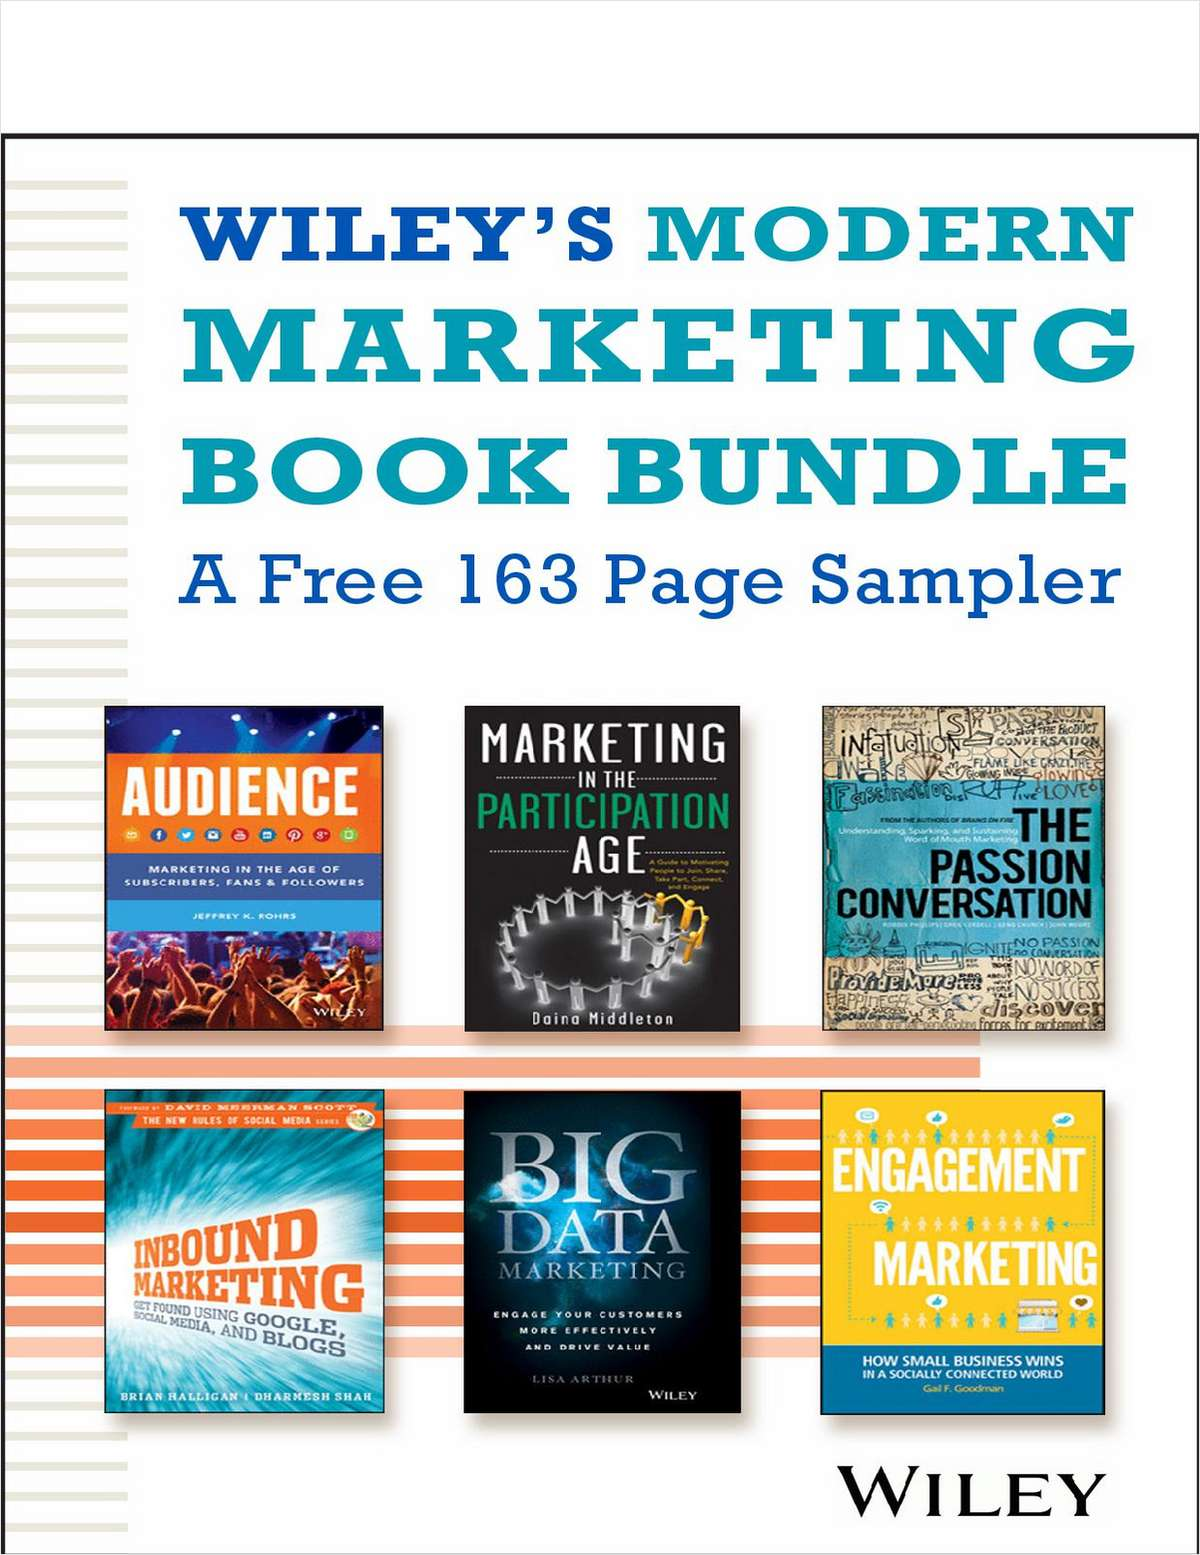 Wiley's Modern Marketing Book Bundle -- A Free 163 Page Sampler